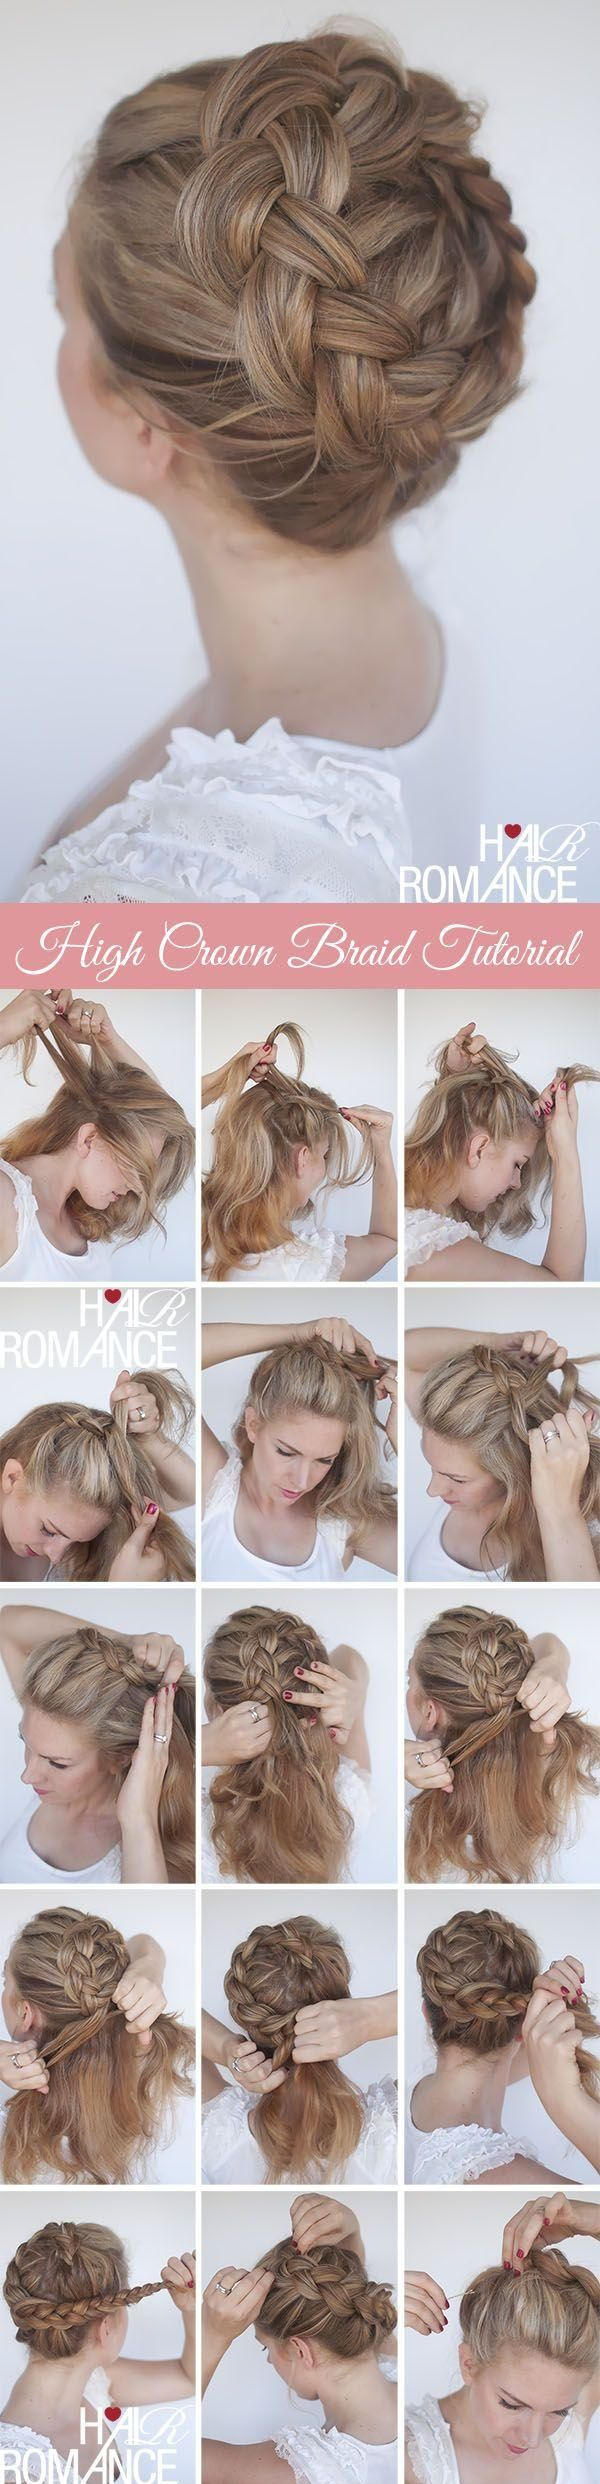 Nice tutorial for braided crown hairstyles